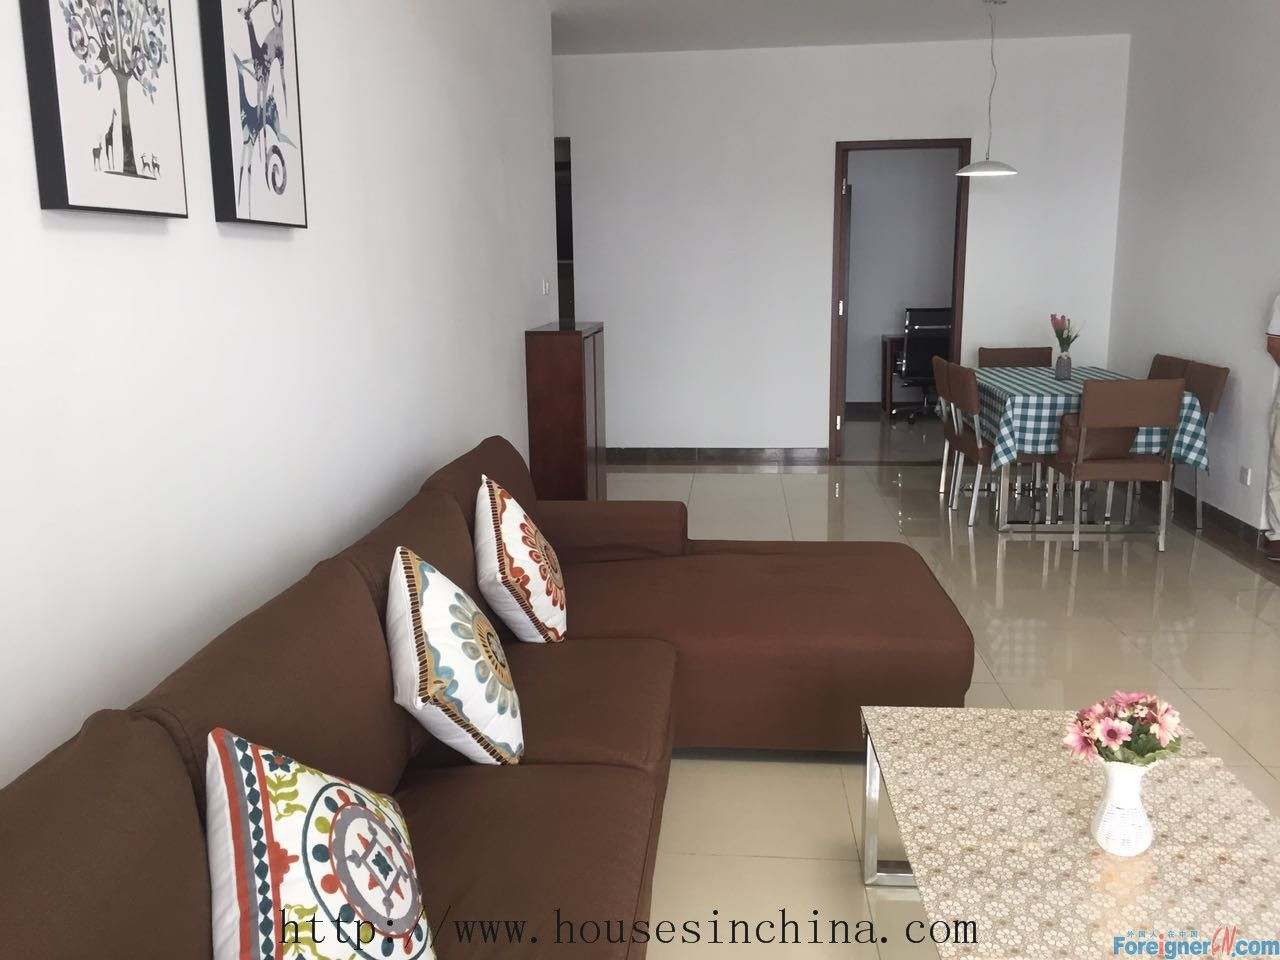 Lingfeng Garden Apartment-3Br, 124sqm,Hotel-style management, clean and simple, facing south, 5mins walk to line5 liede metro.RMB9200 per month including tax fee